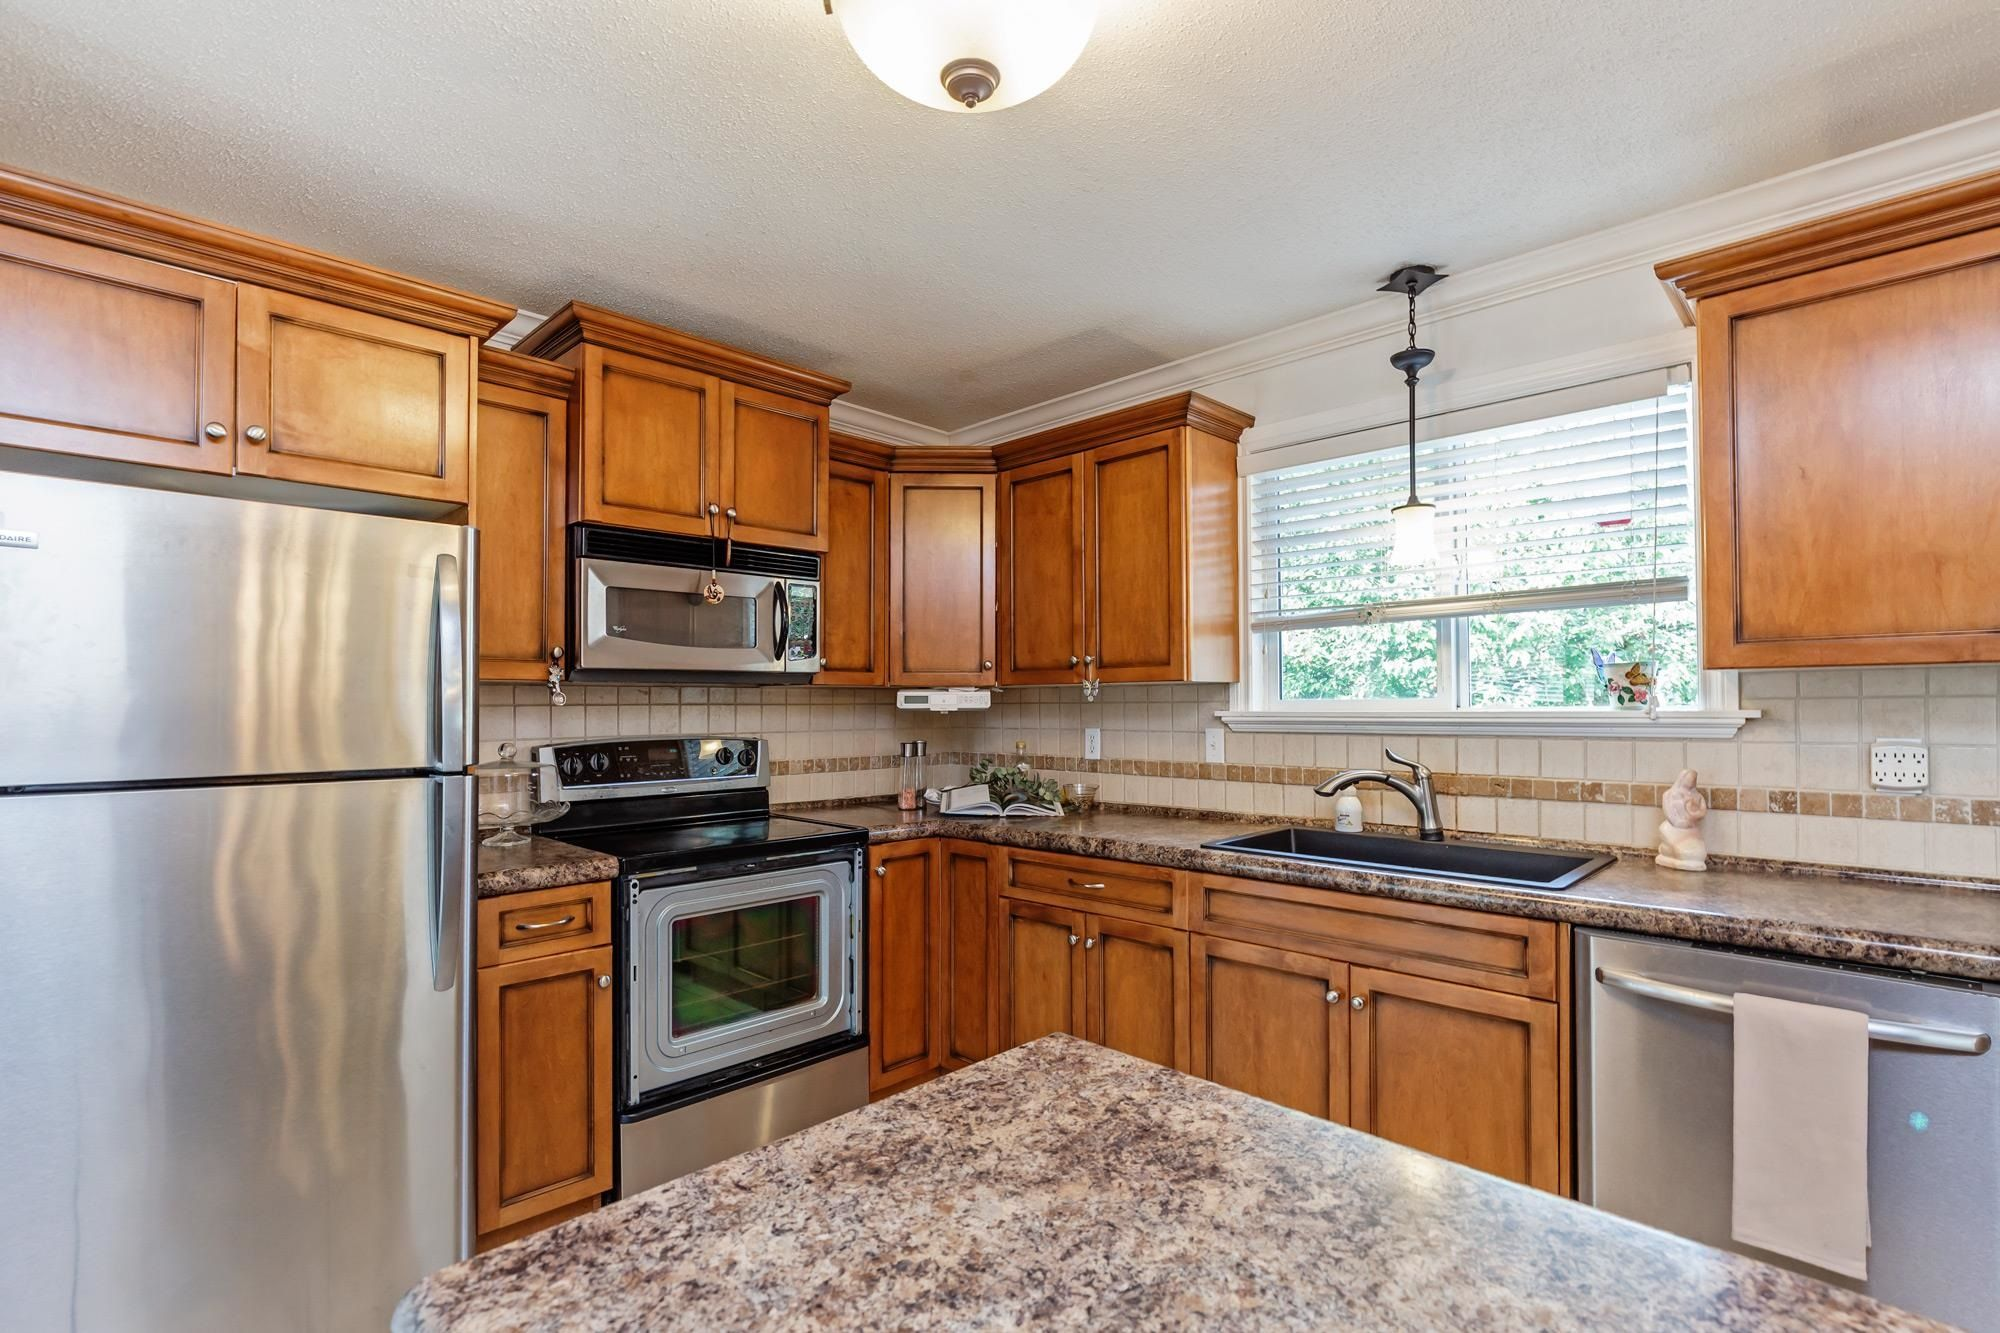 Photo 12: Photos: 32319 ATWATER Crescent in Abbotsford: Abbotsford West House for sale : MLS®# R2609136